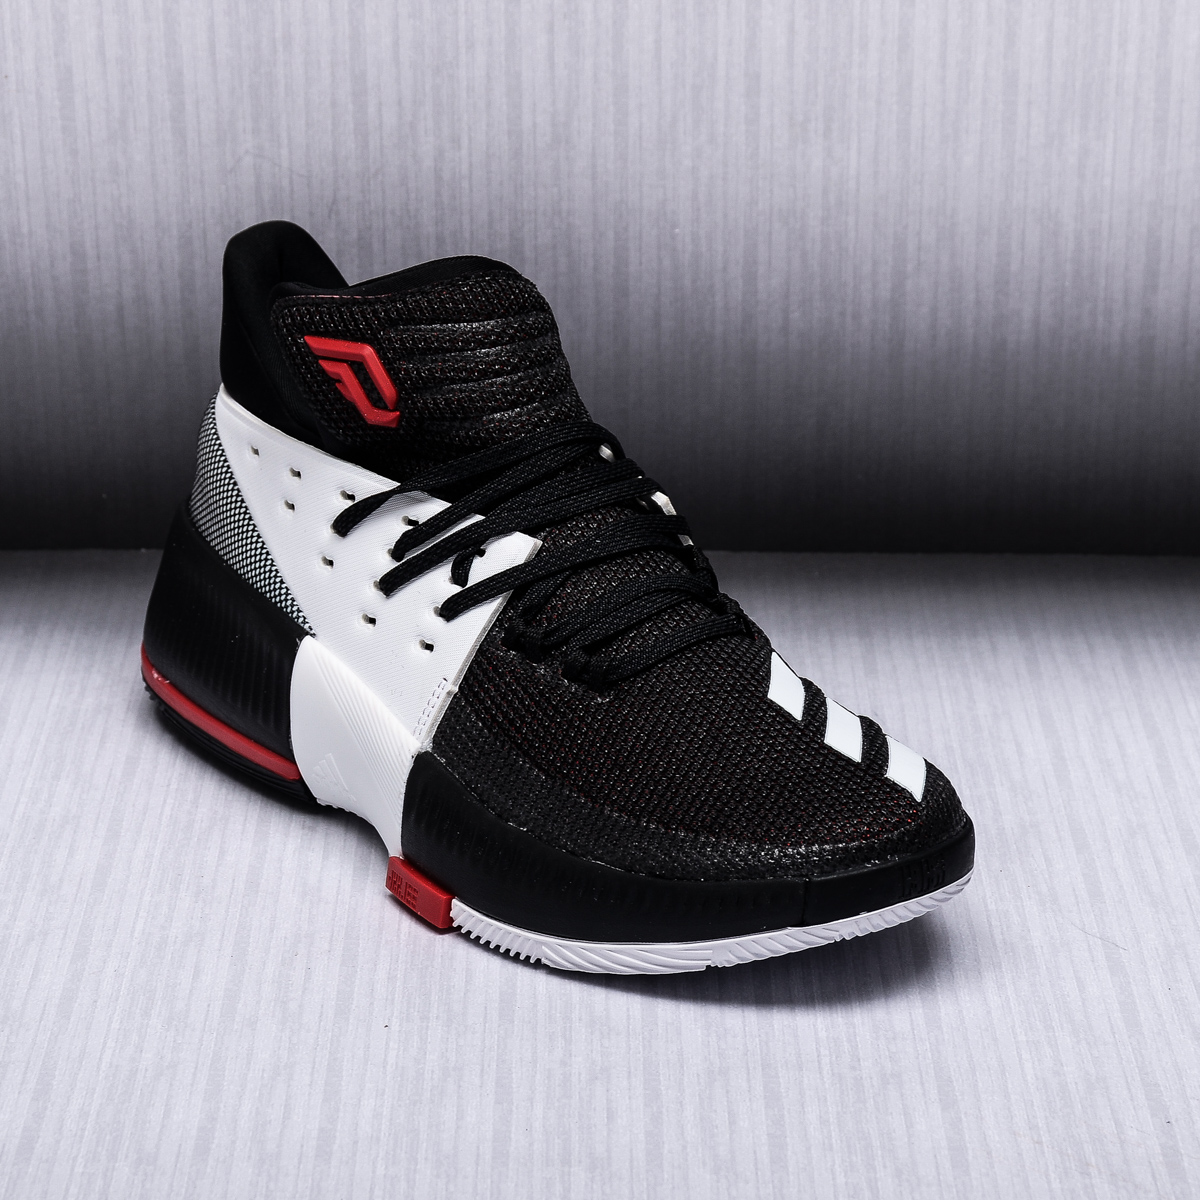 adidas Dame Lillard 3 On Tour Basketball Shoes ...